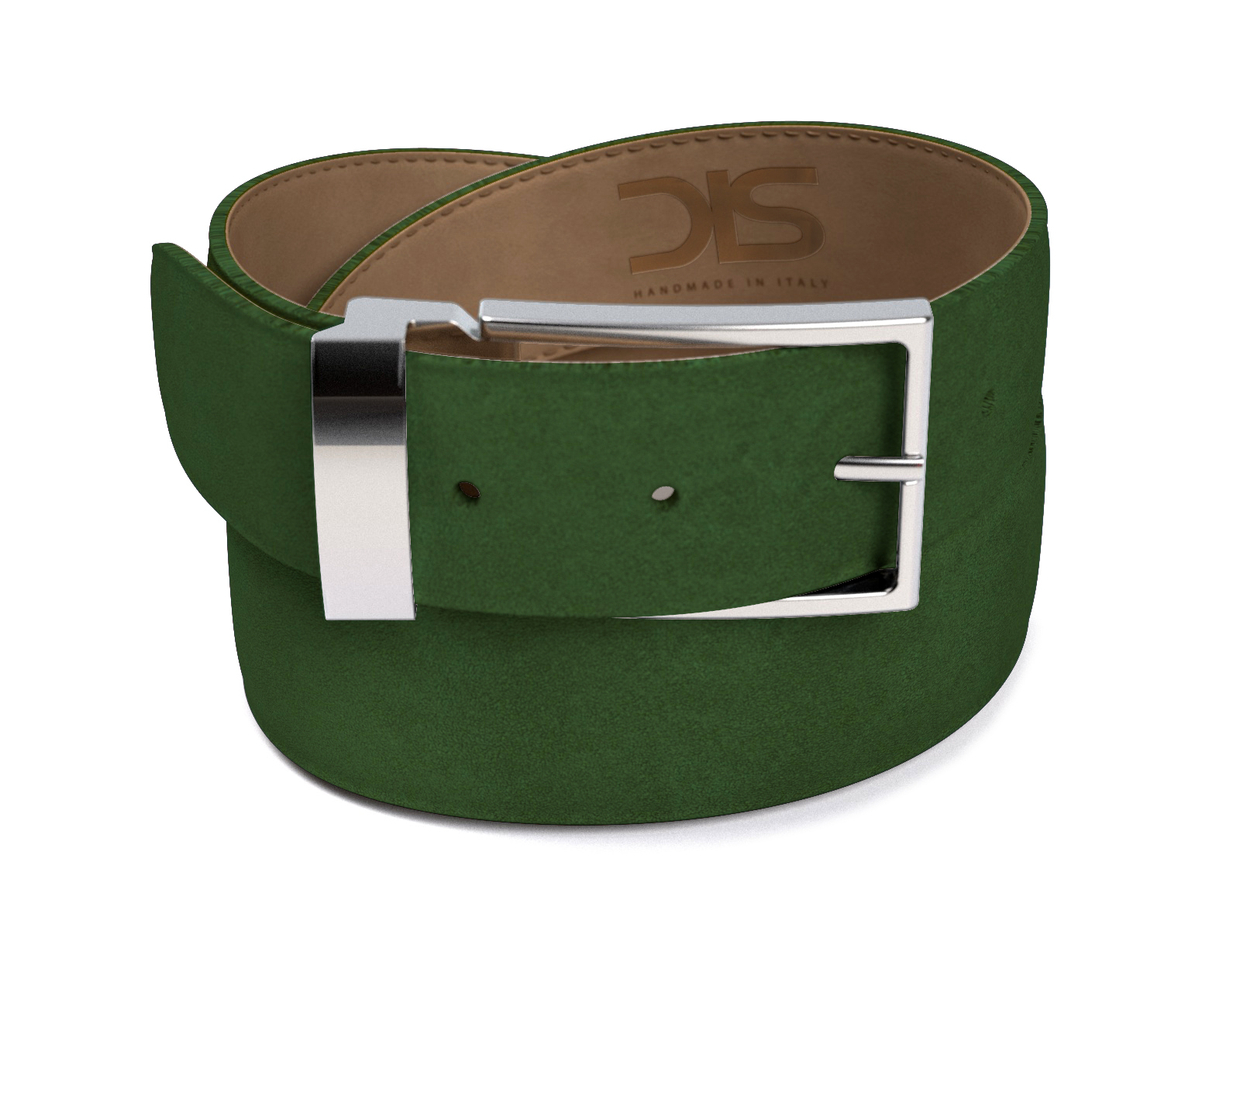 Green suede leather belt with silver buckle